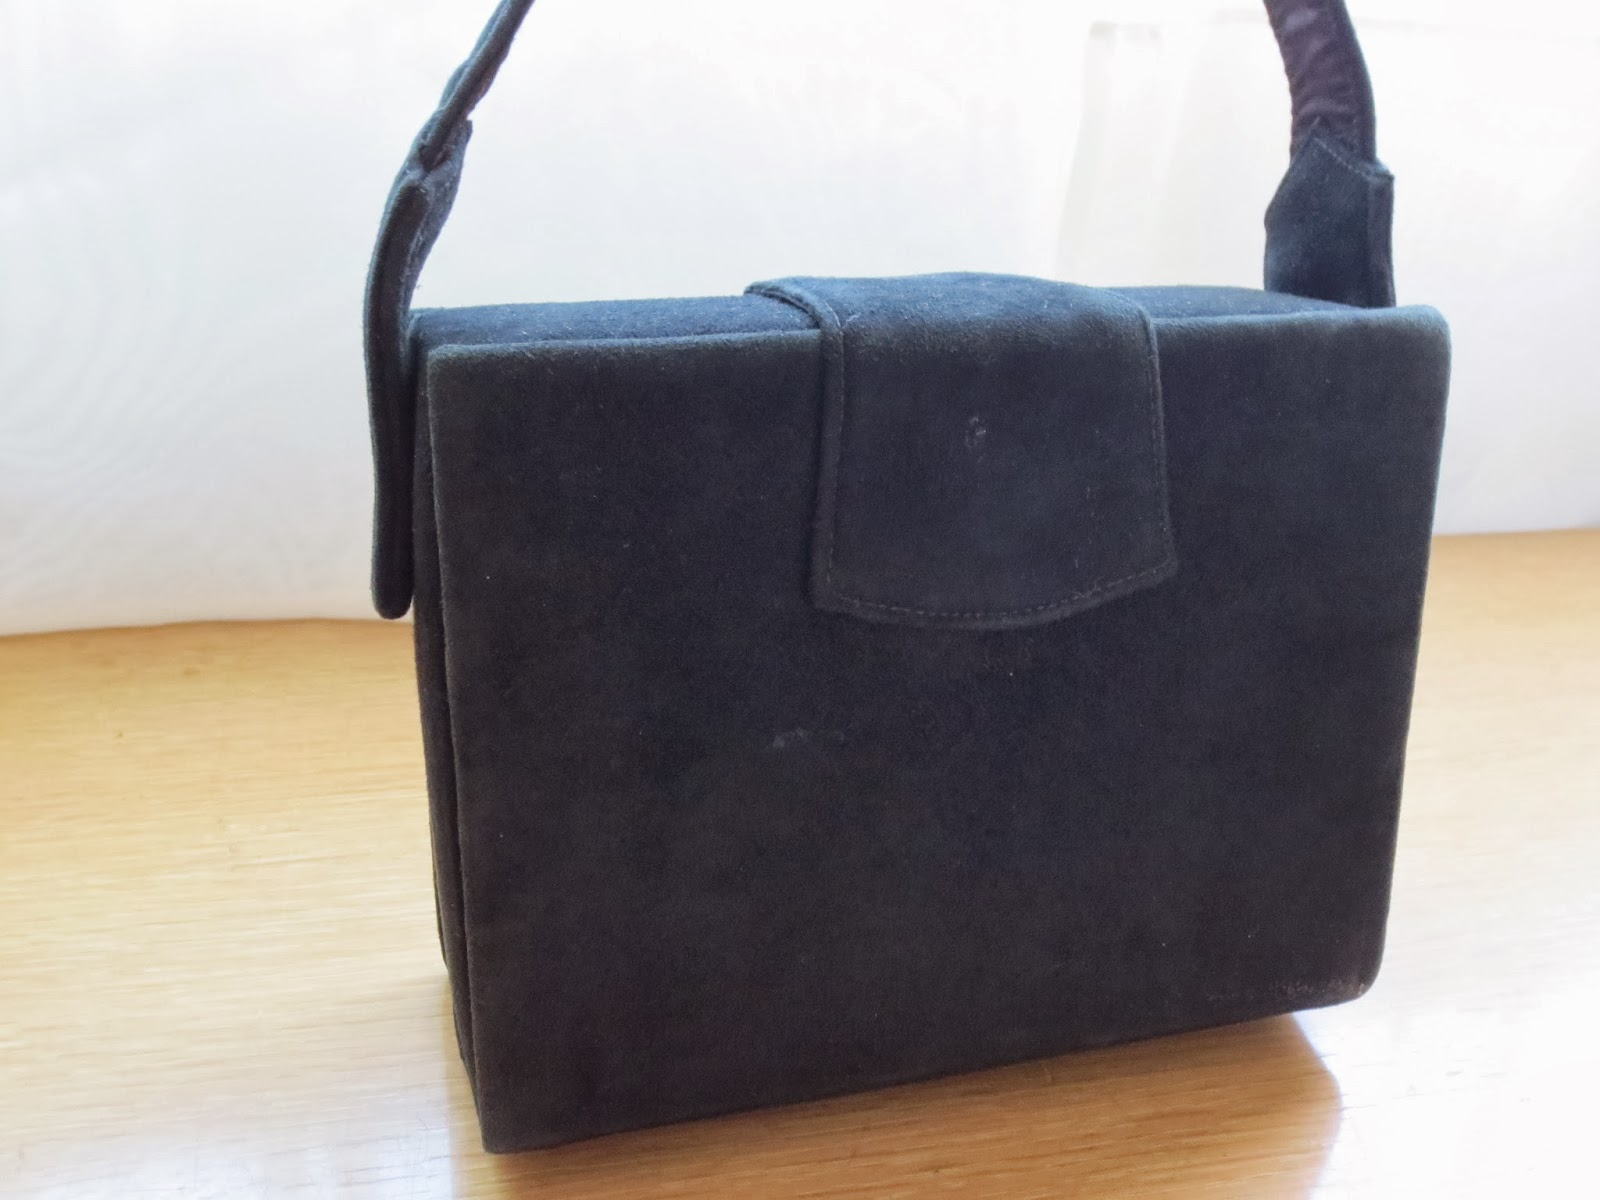 1940s black suede box purse via Brentwood Lane